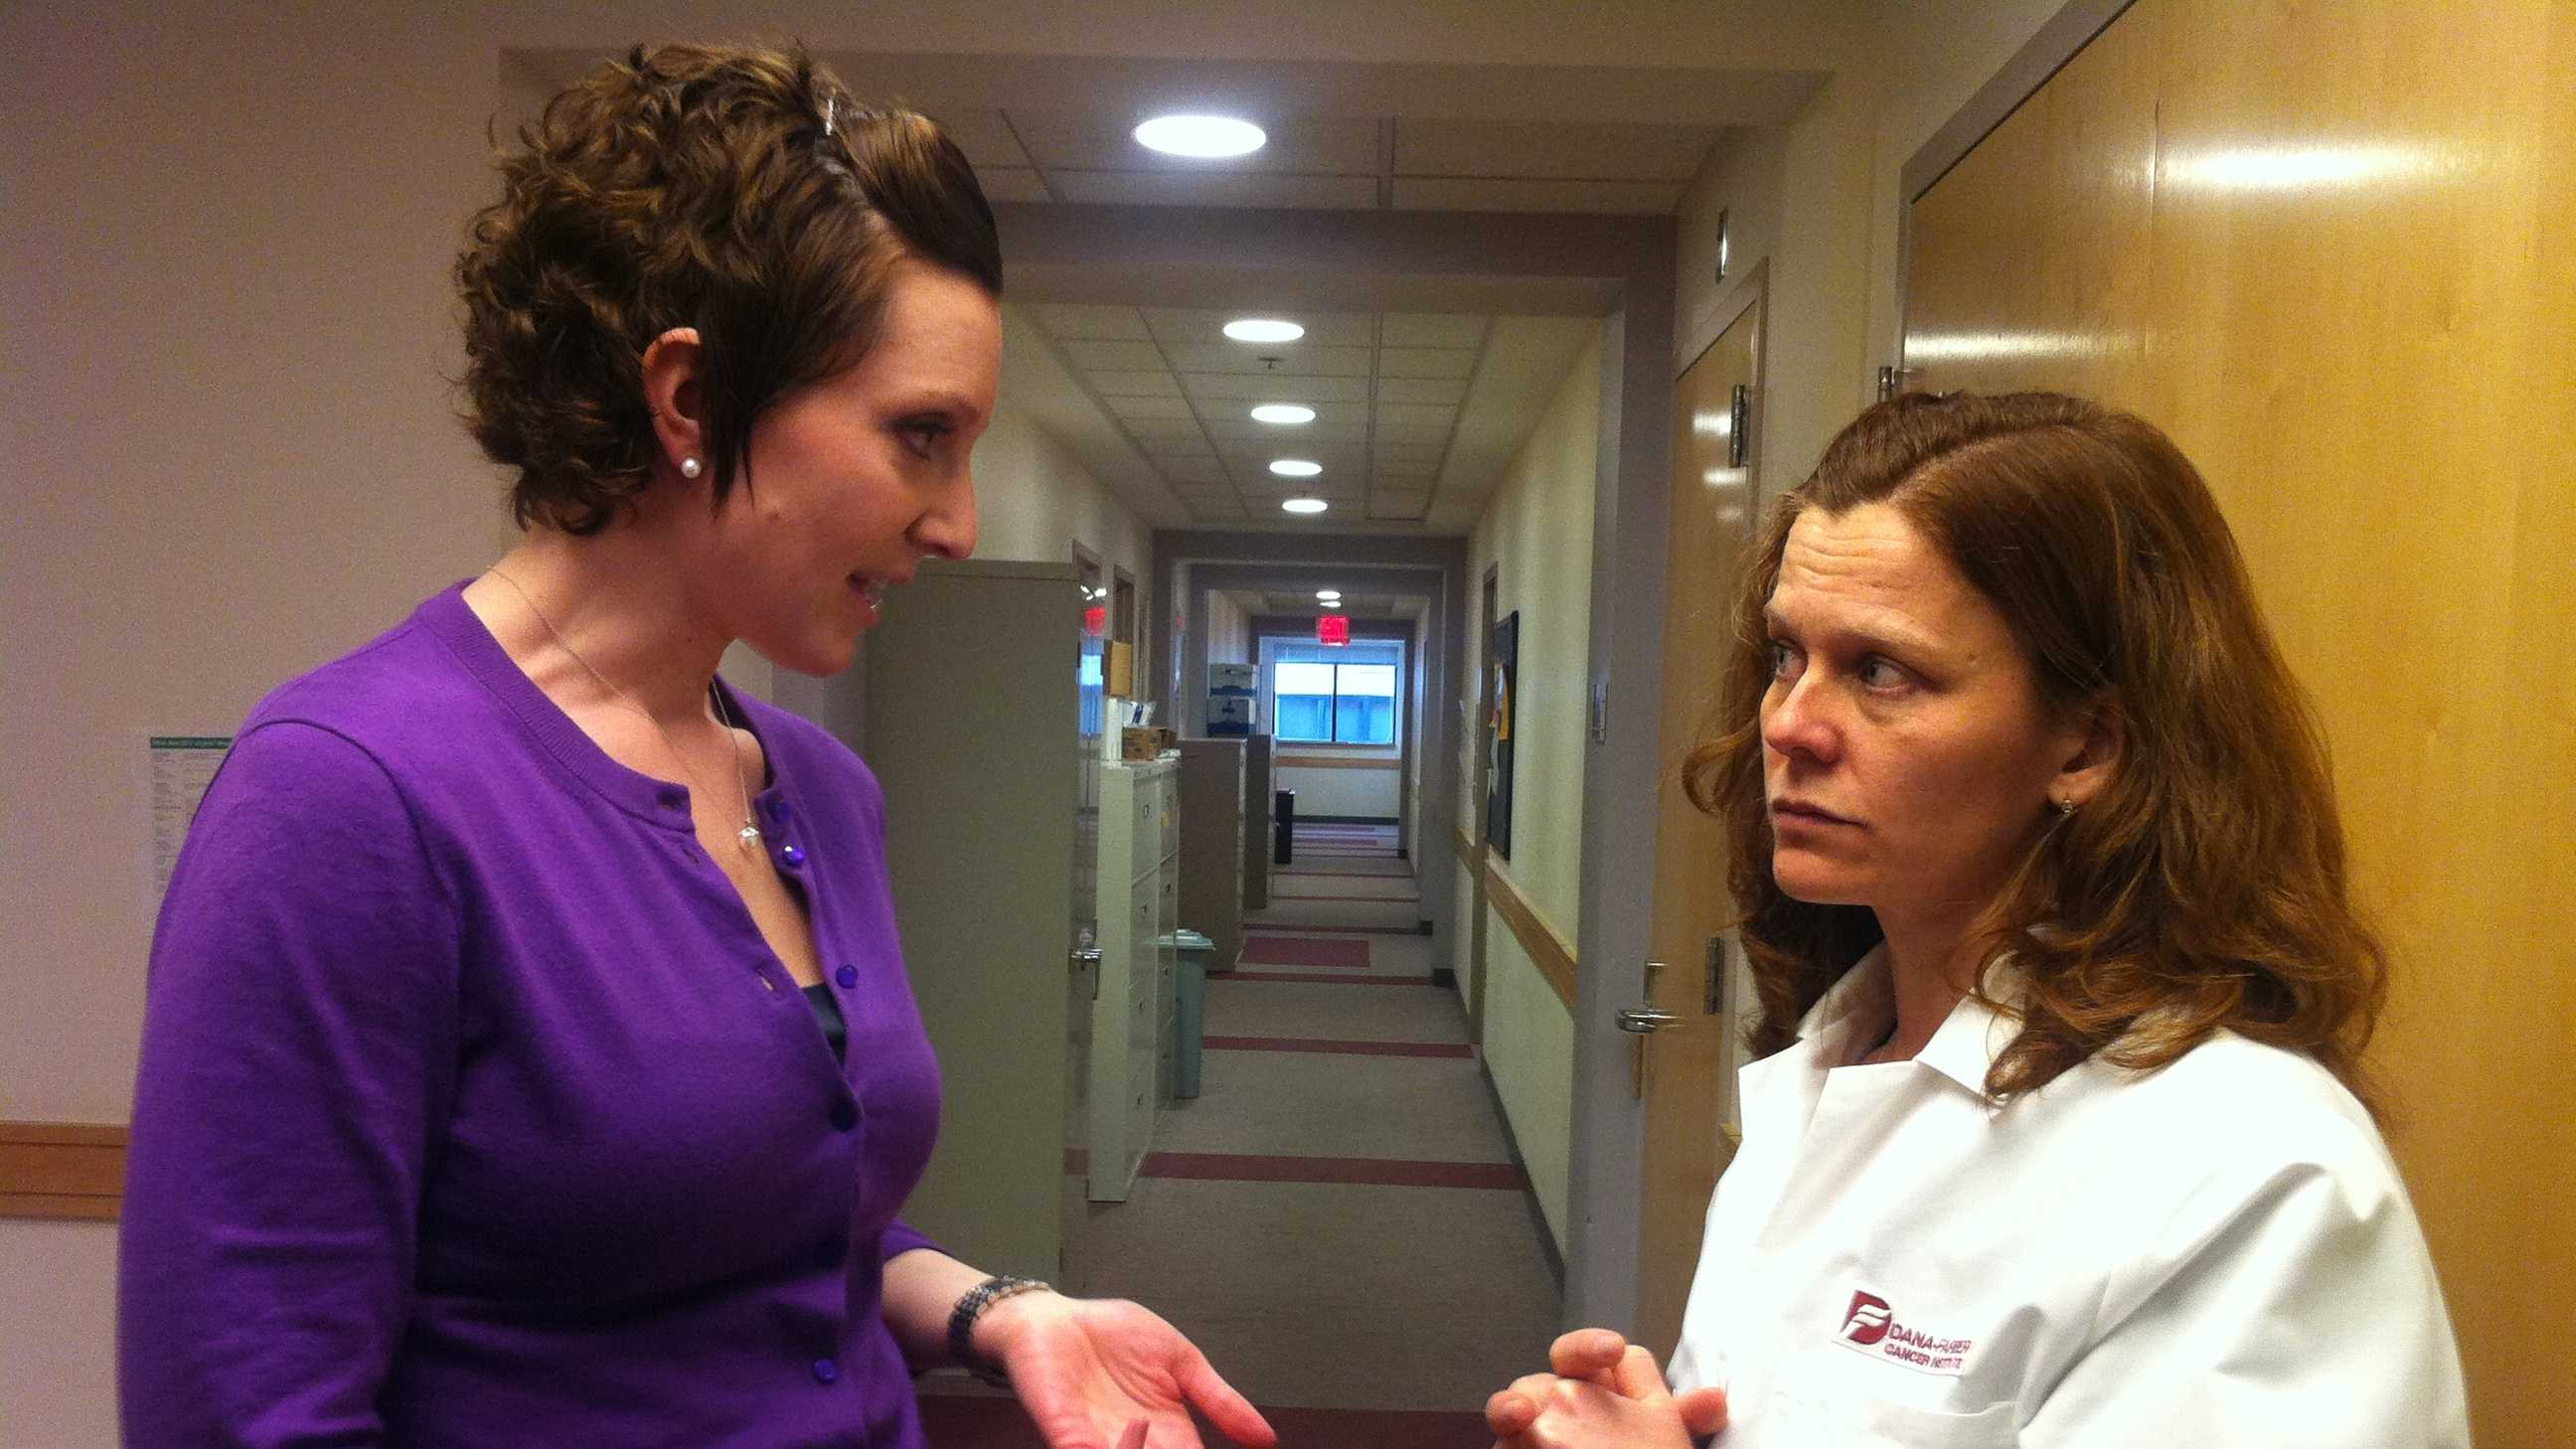 On left, Maggie Loucks, who was diagnosed with breast cancer at age 28. On right, Dr. Ann Partridge, who runs the young women's breast cancer program at Dana-Farber Cancer Institute